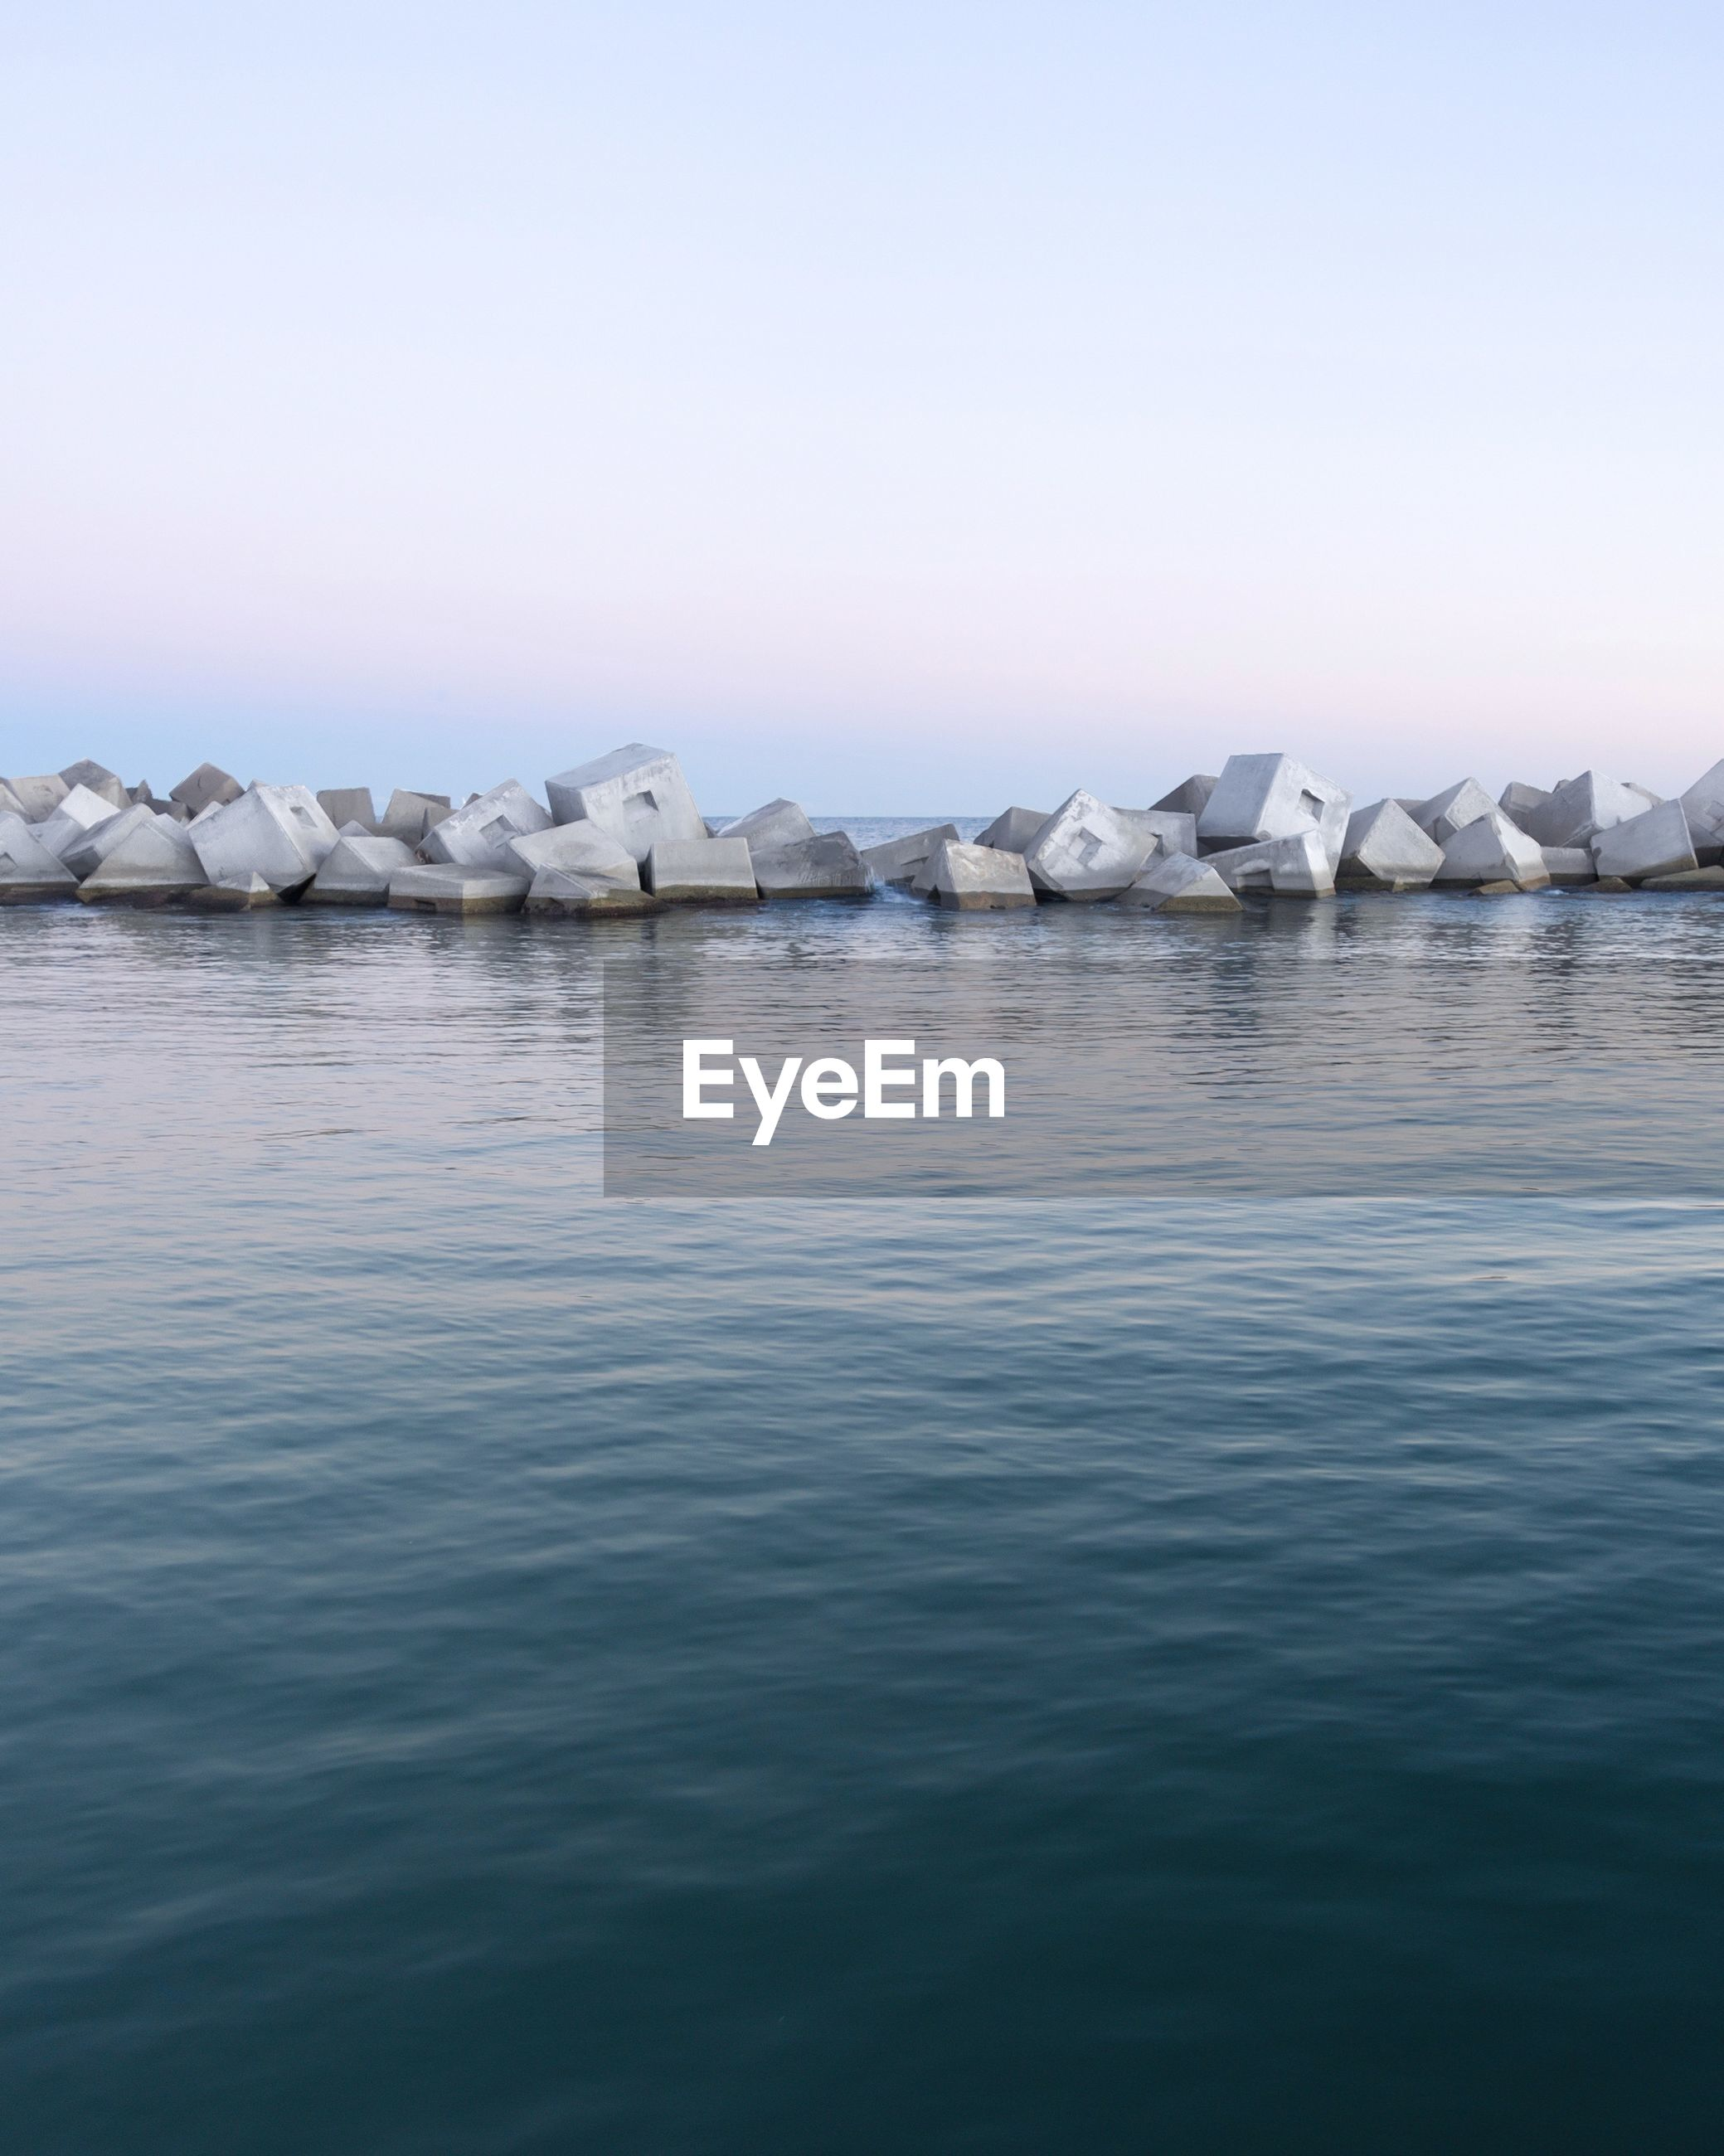 water, waterfront, cold temperature, tranquility, ice, tranquil scene, scenics - nature, no people, sky, beauty in nature, winter, nature, day, iceberg, lake, floating, rippled, copy space, glacier, floating on water, outdoors, melting